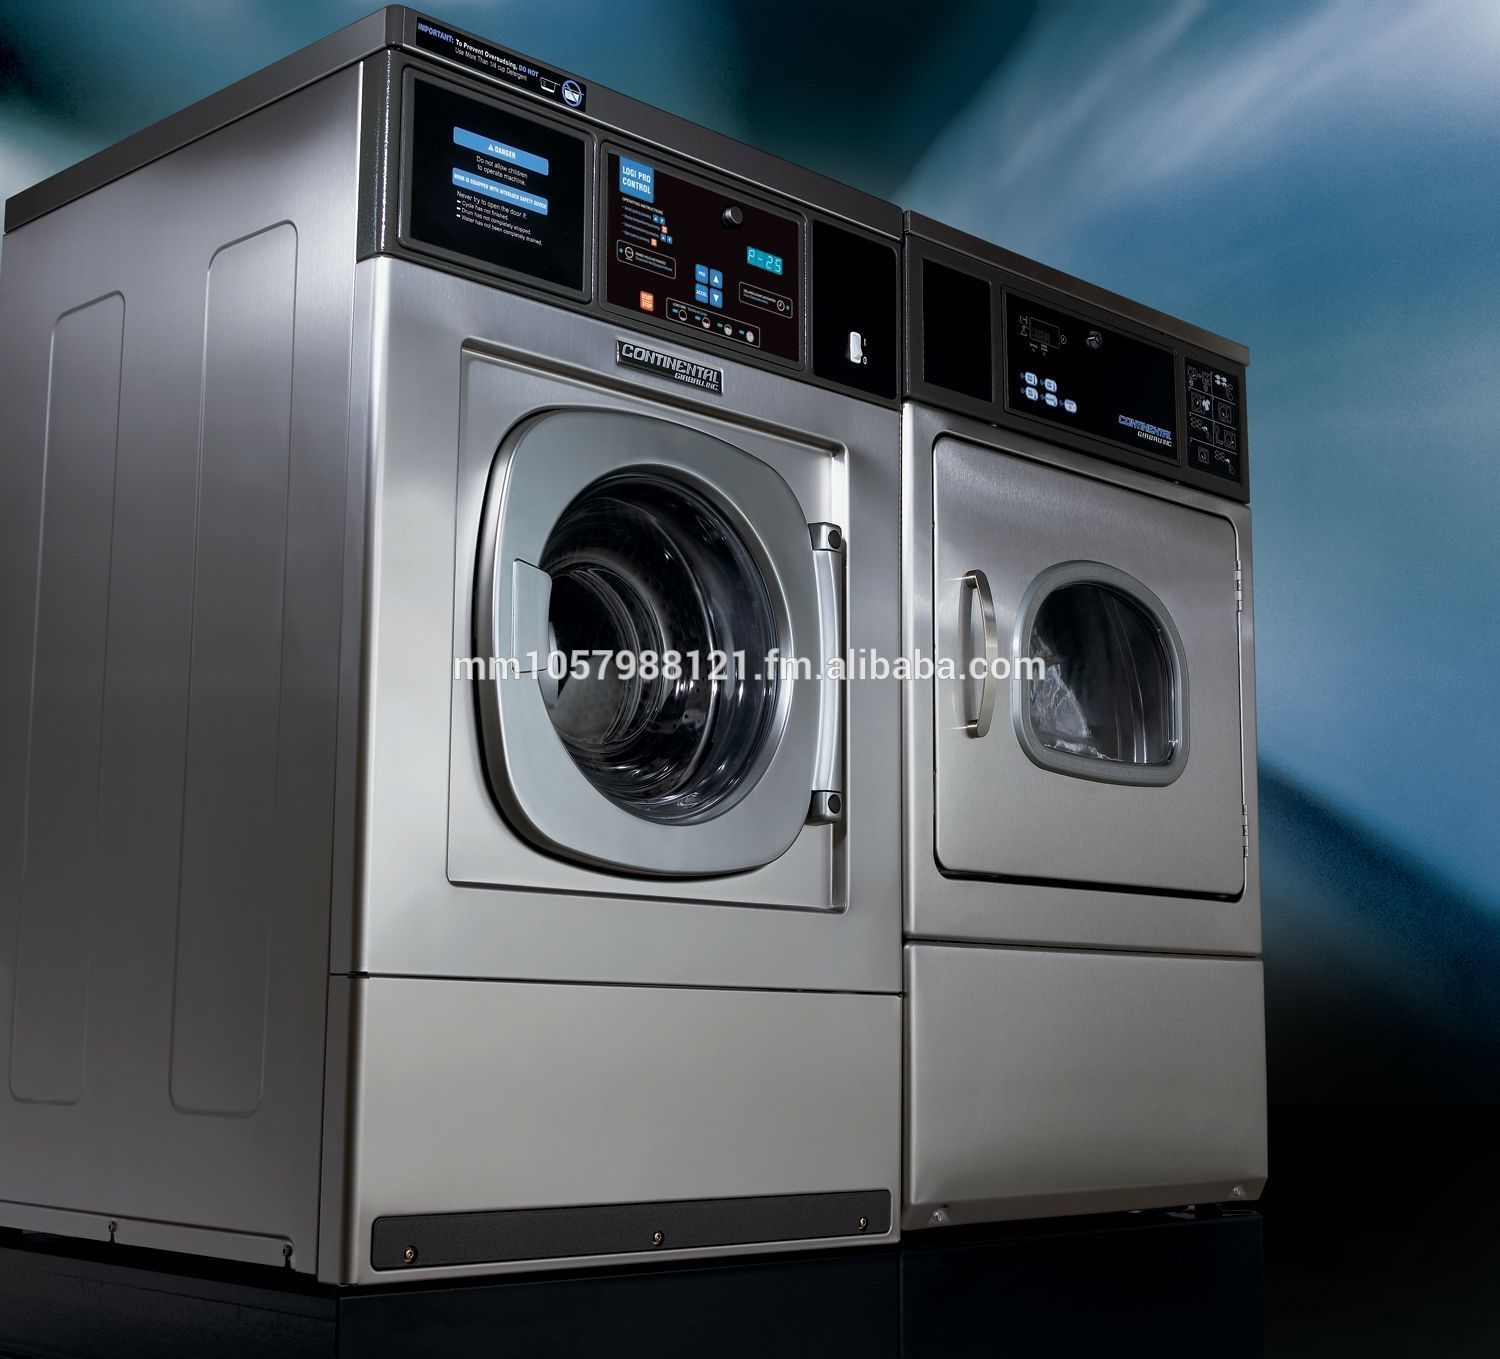 Continental Commercial Washer Dryer For Residential Use Buy Washing Machine Product On Alibaba Com Commercial Washer Washer And Dryer Buy Washing Machine